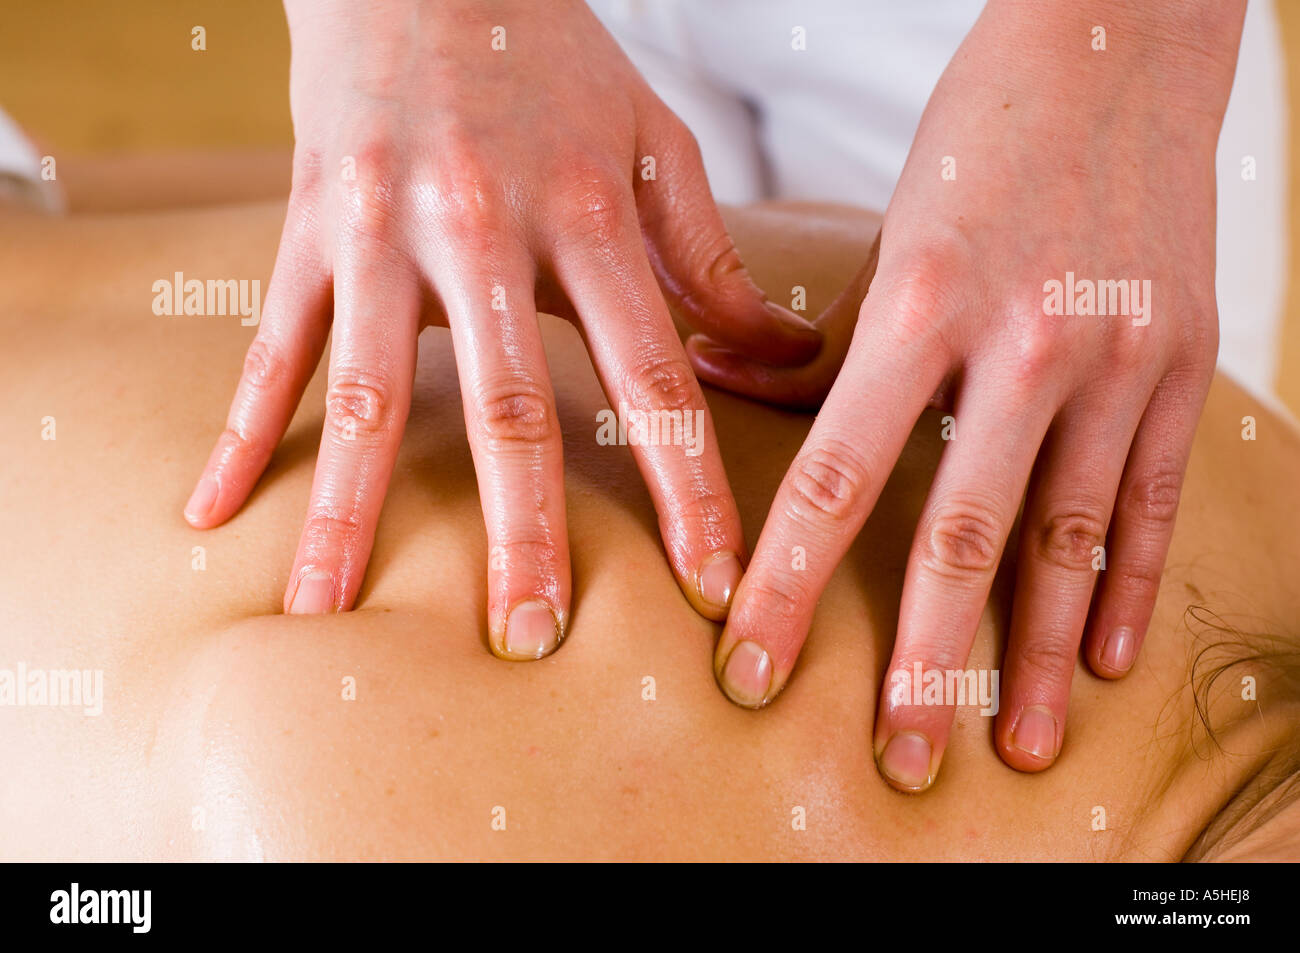 hands giving a massage to a back - Stock Image